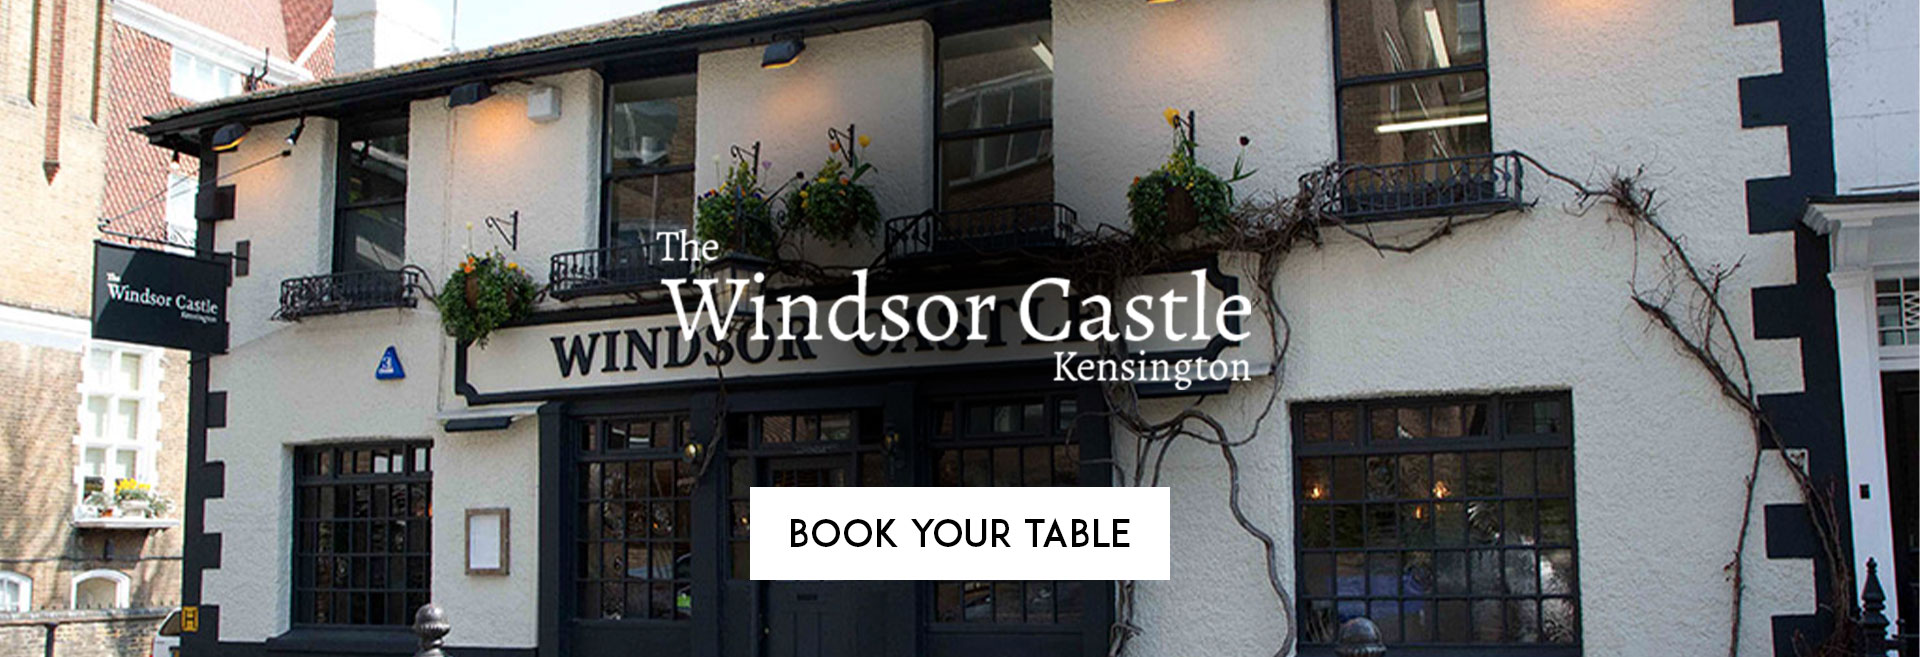 Book Your Table The Windsor Castle